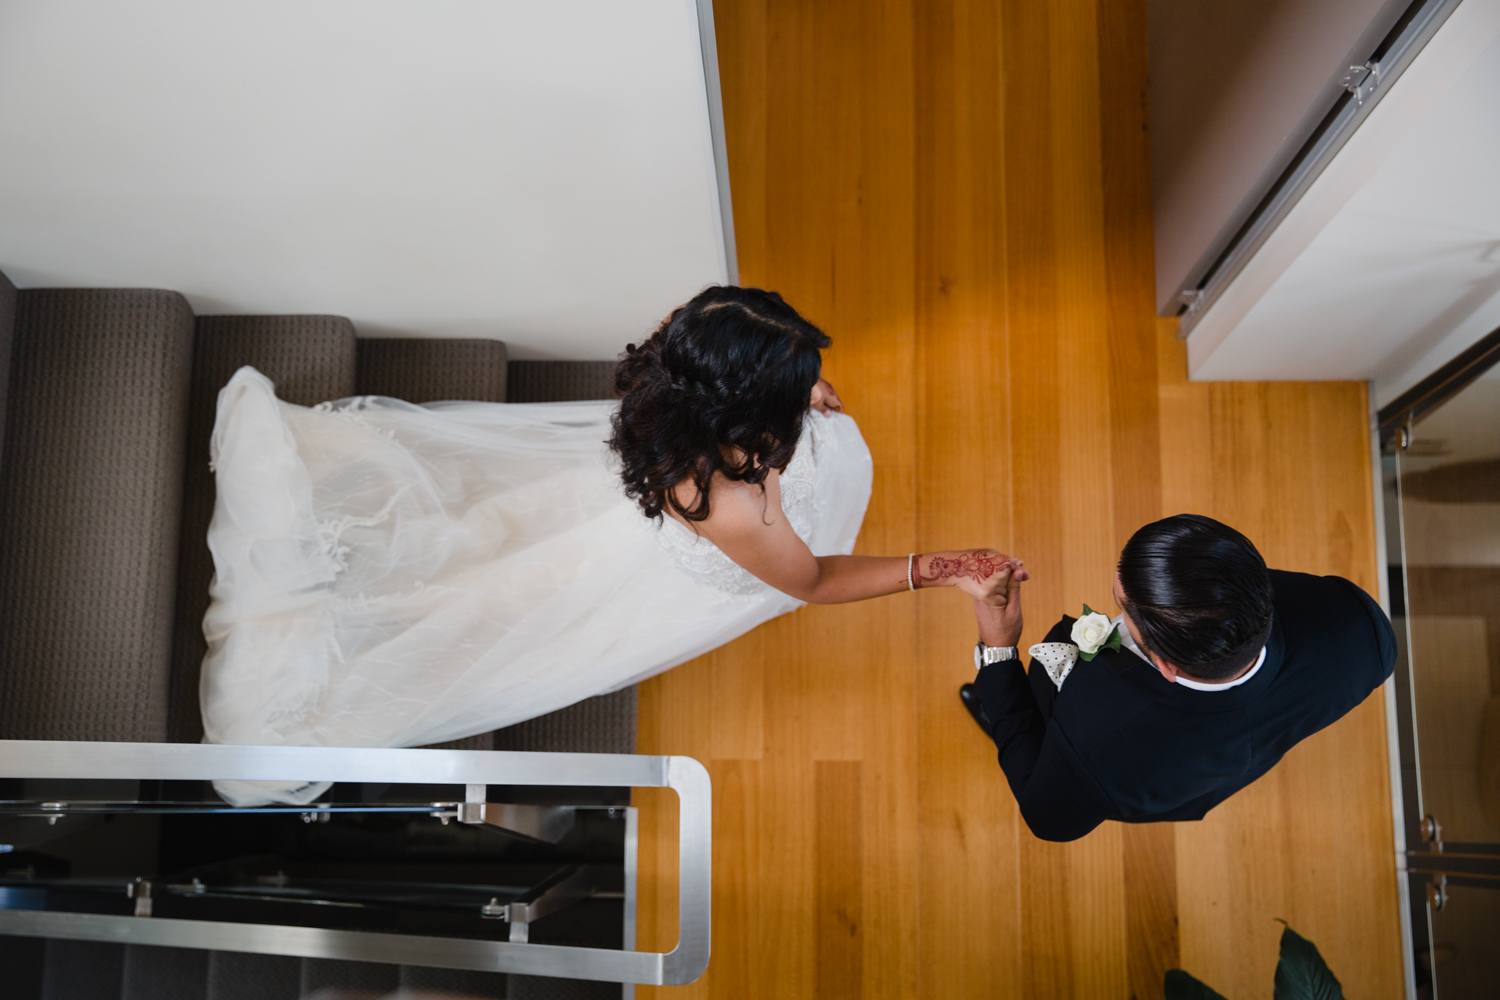 First look. This image was taken by Mala Photography, an Auckland based wedding photographer. The wedding was at Markovina Vineyard Estate In Kumeu, Auckland